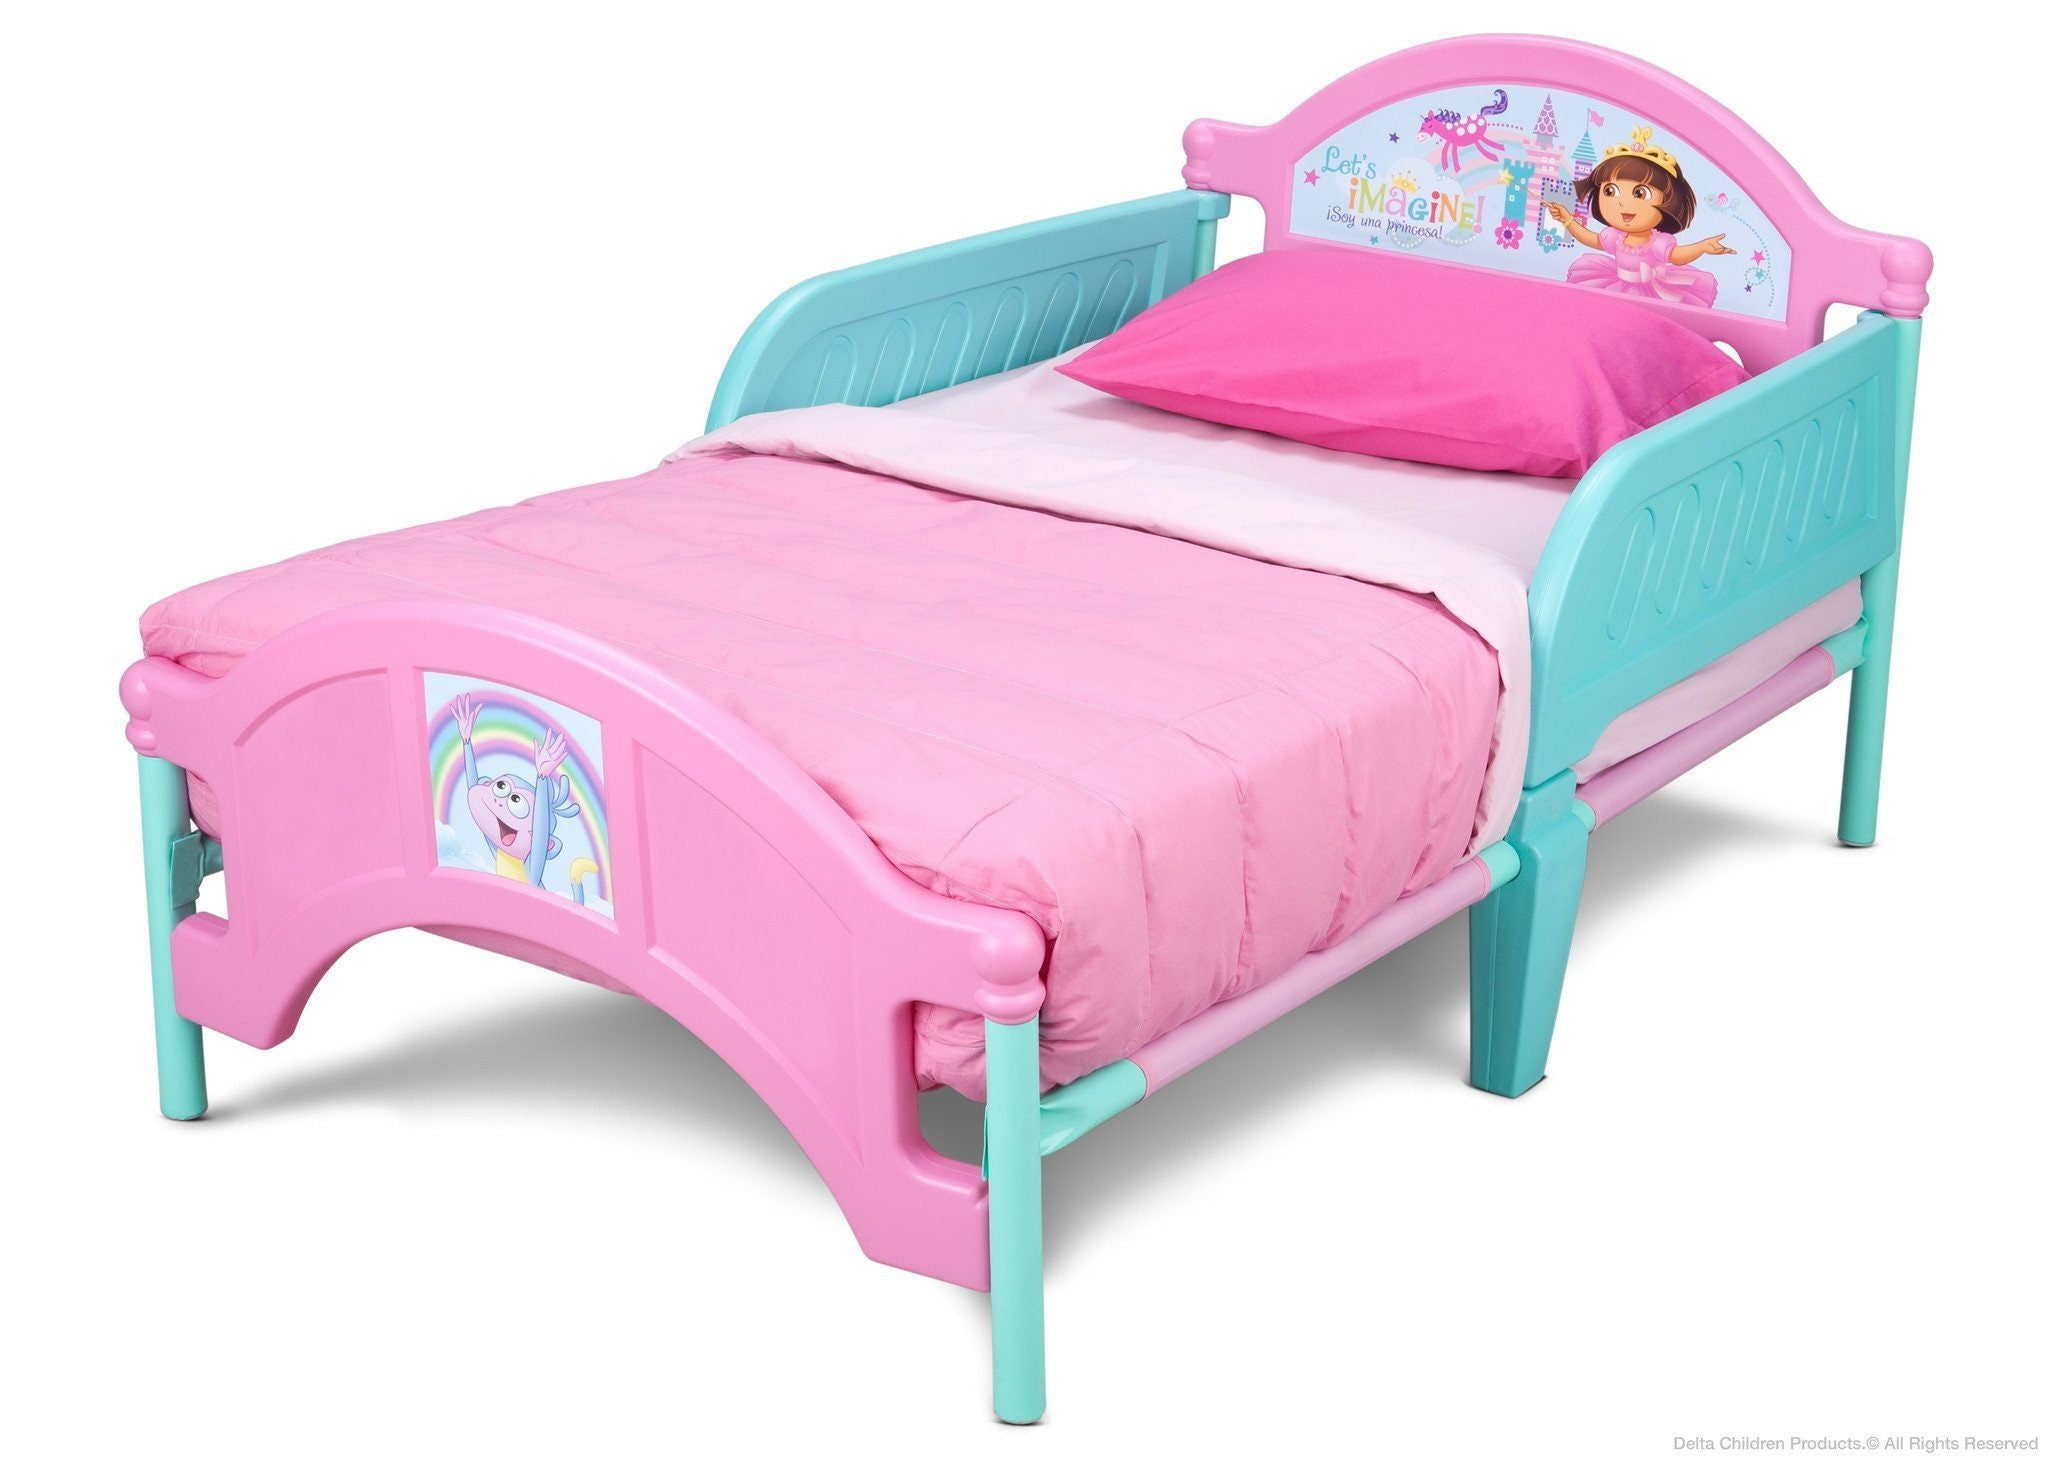 Delta Children S Products Disney Frozen Plastic Toddler Bed Instructions